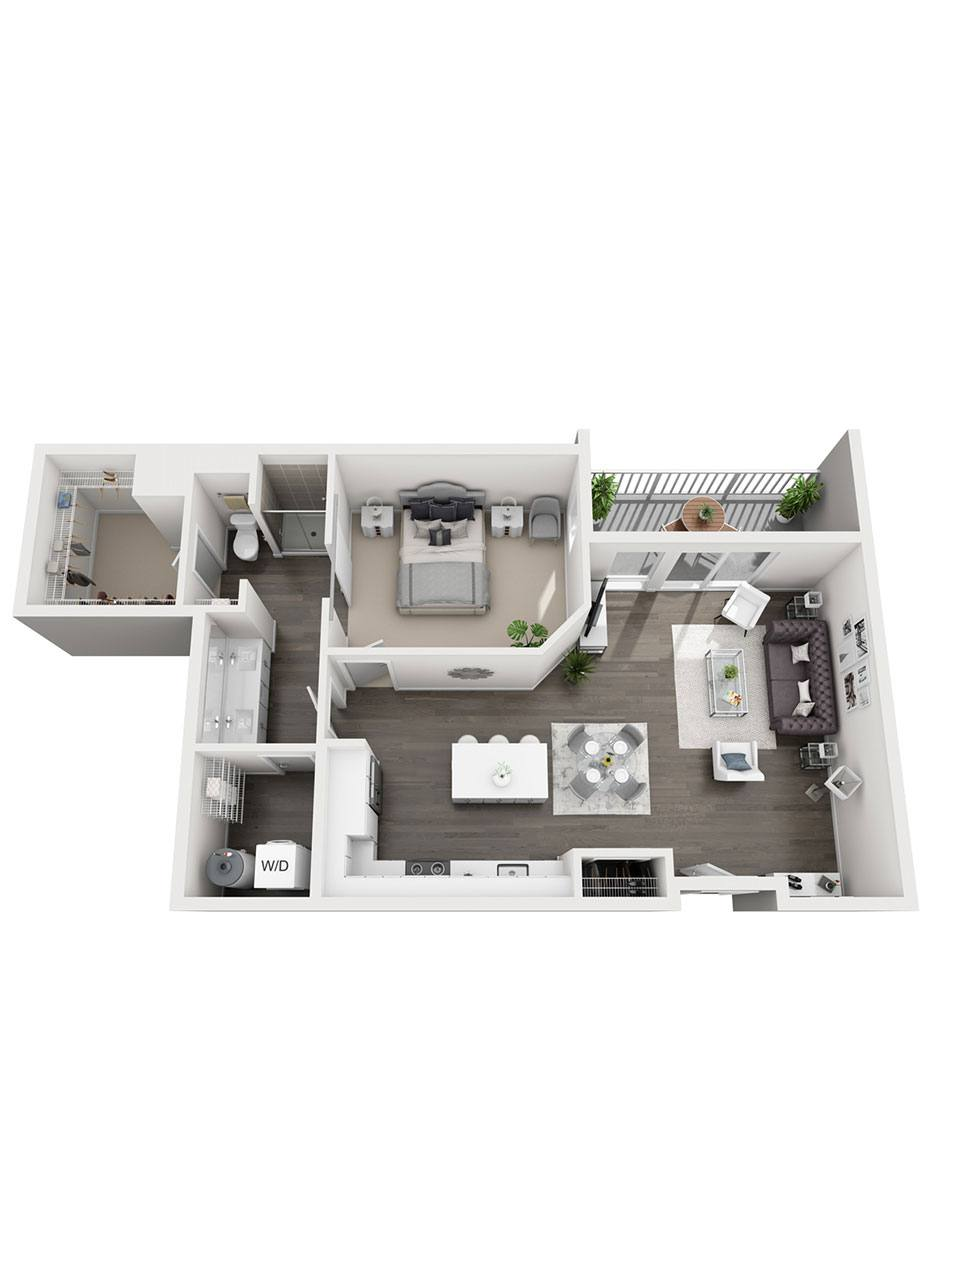 Plan 1 bedroom – A3 | 1 Bath